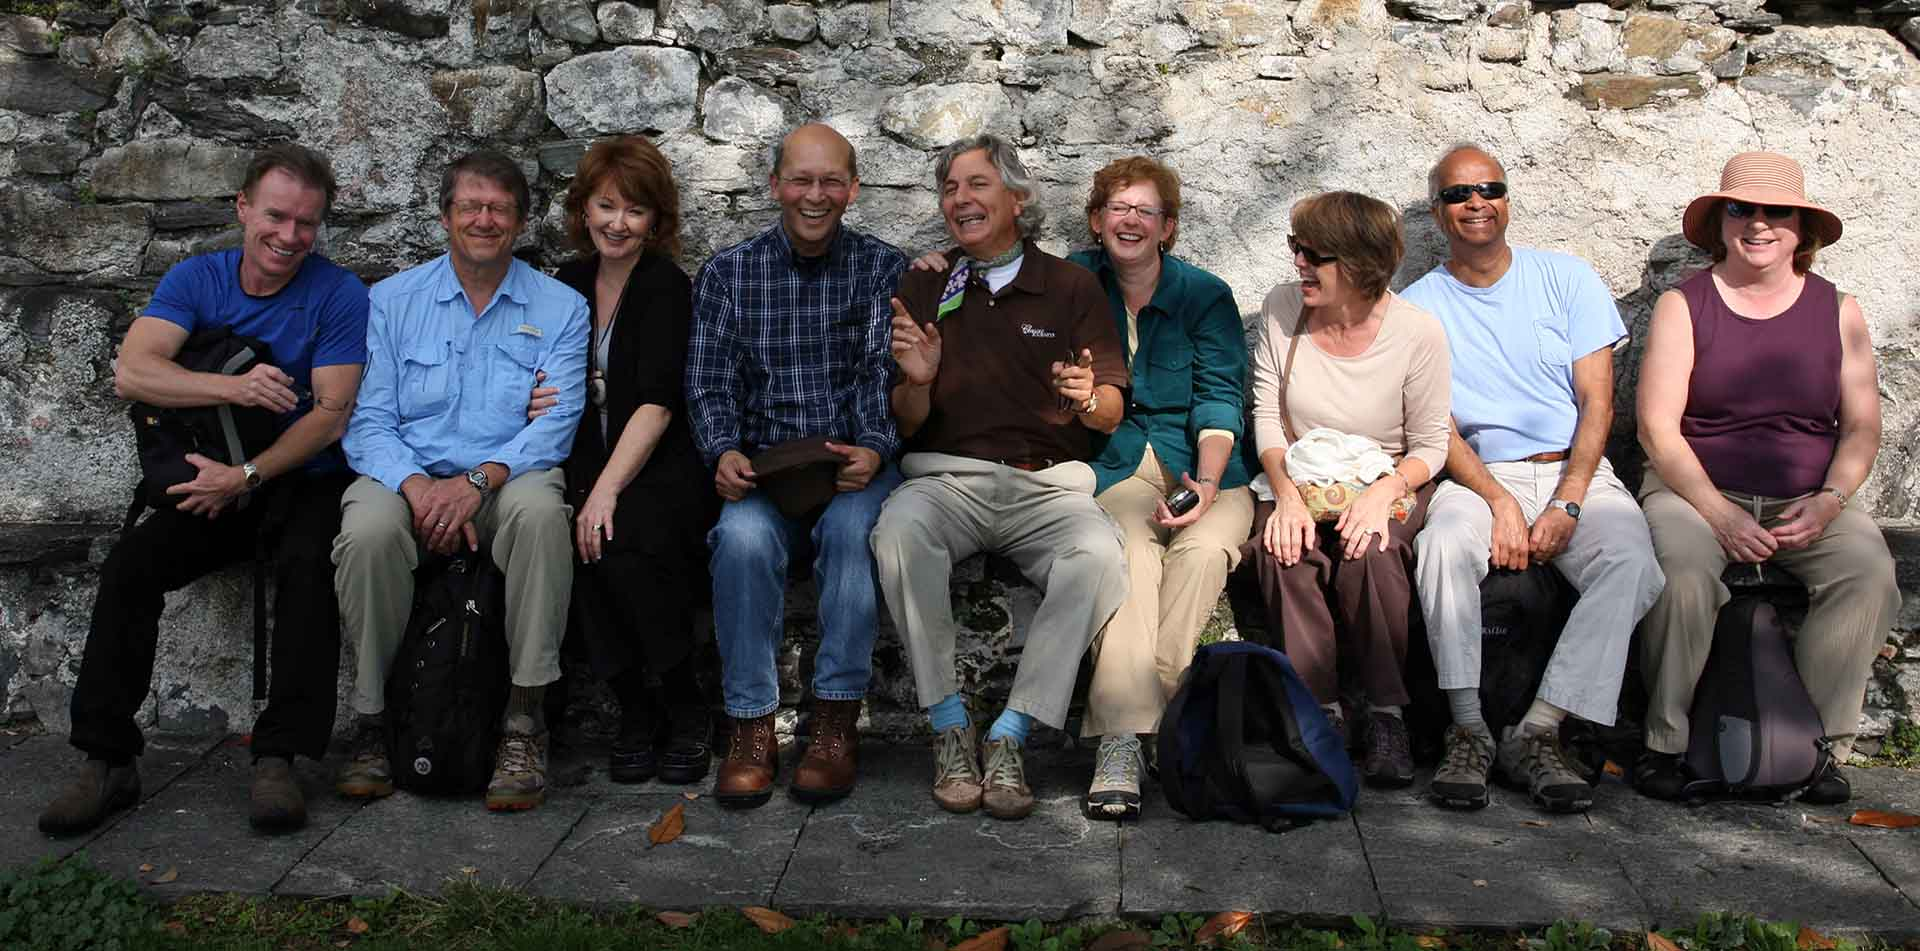 Europe Italy Italian Lakes happy group sitting against rock wall smiling laughing - luxury vacation destinations